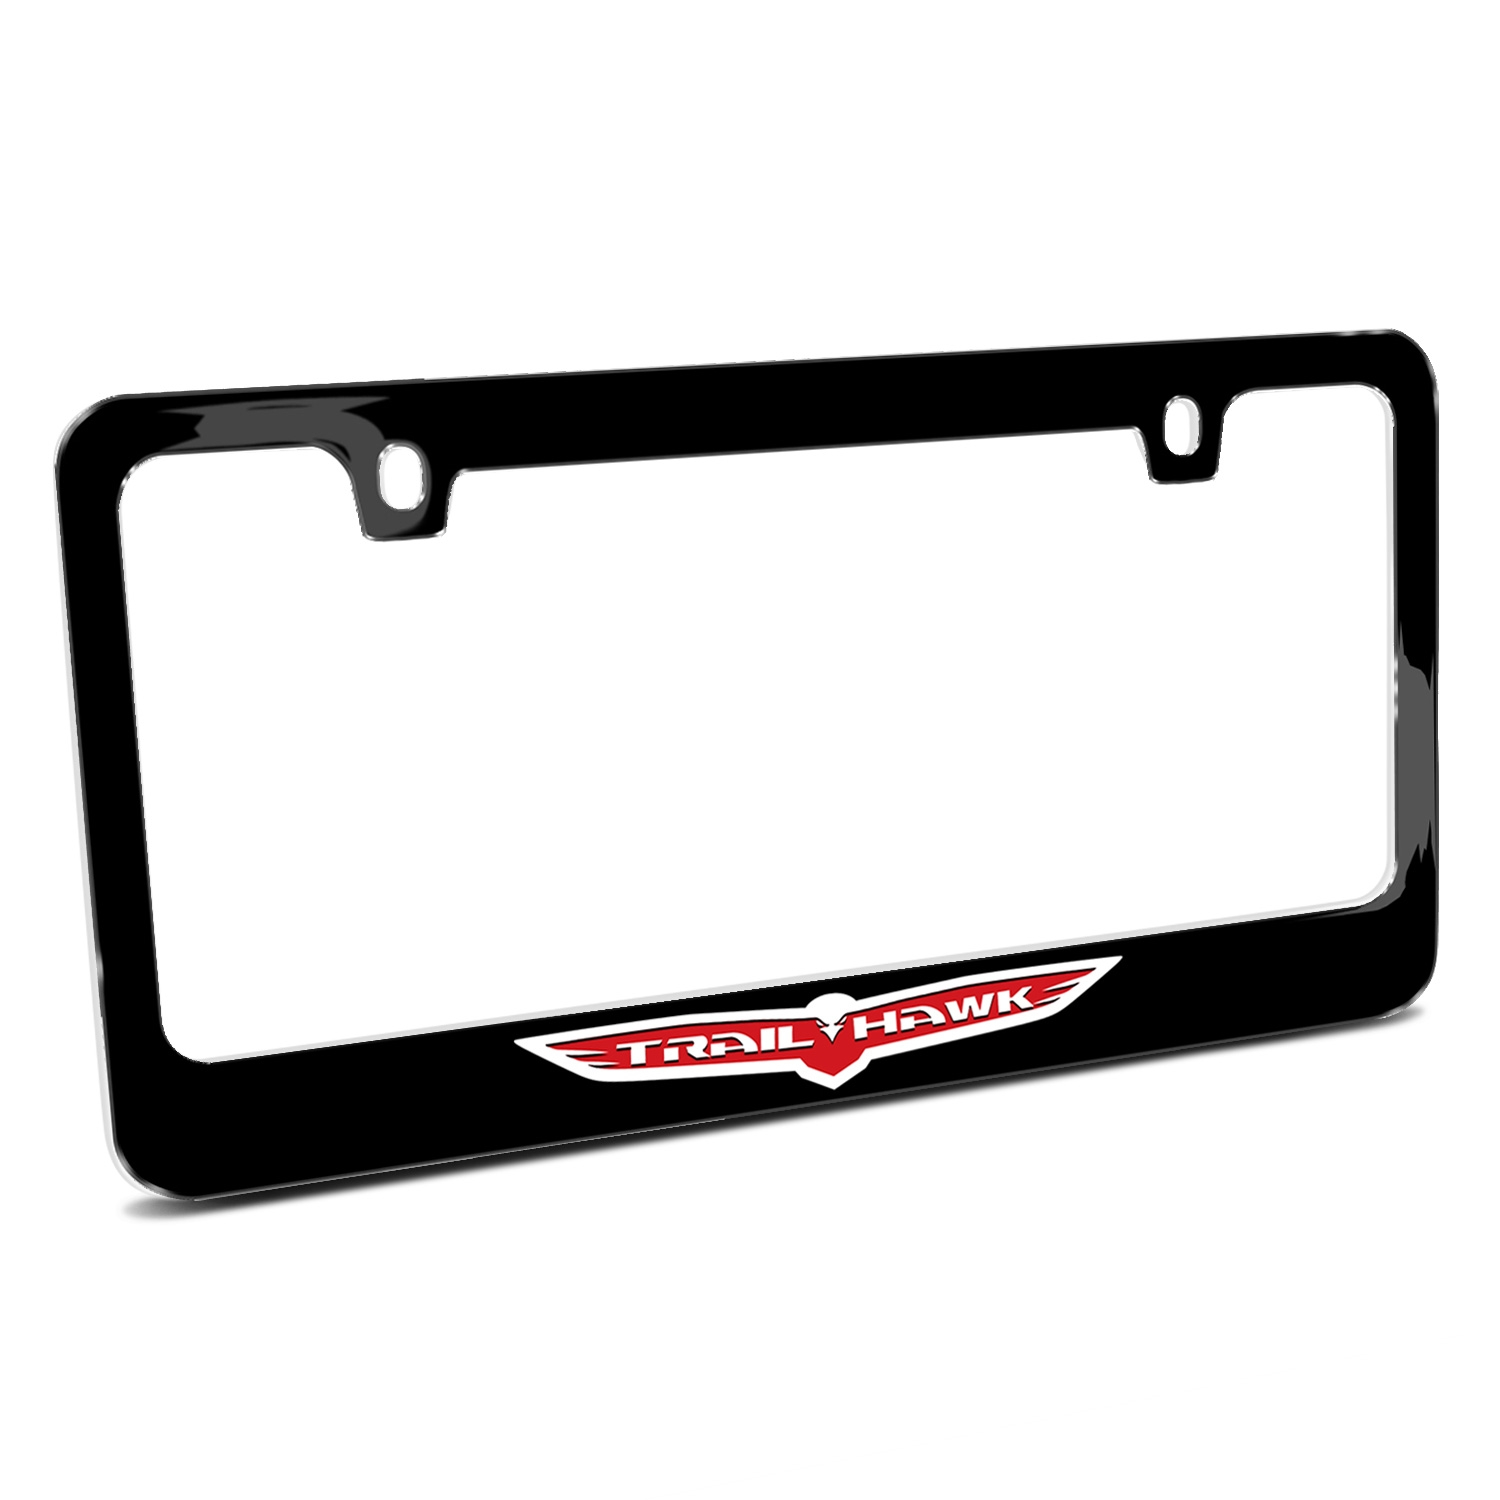 Jeep Trailhawk Black Metal License Plate Frame